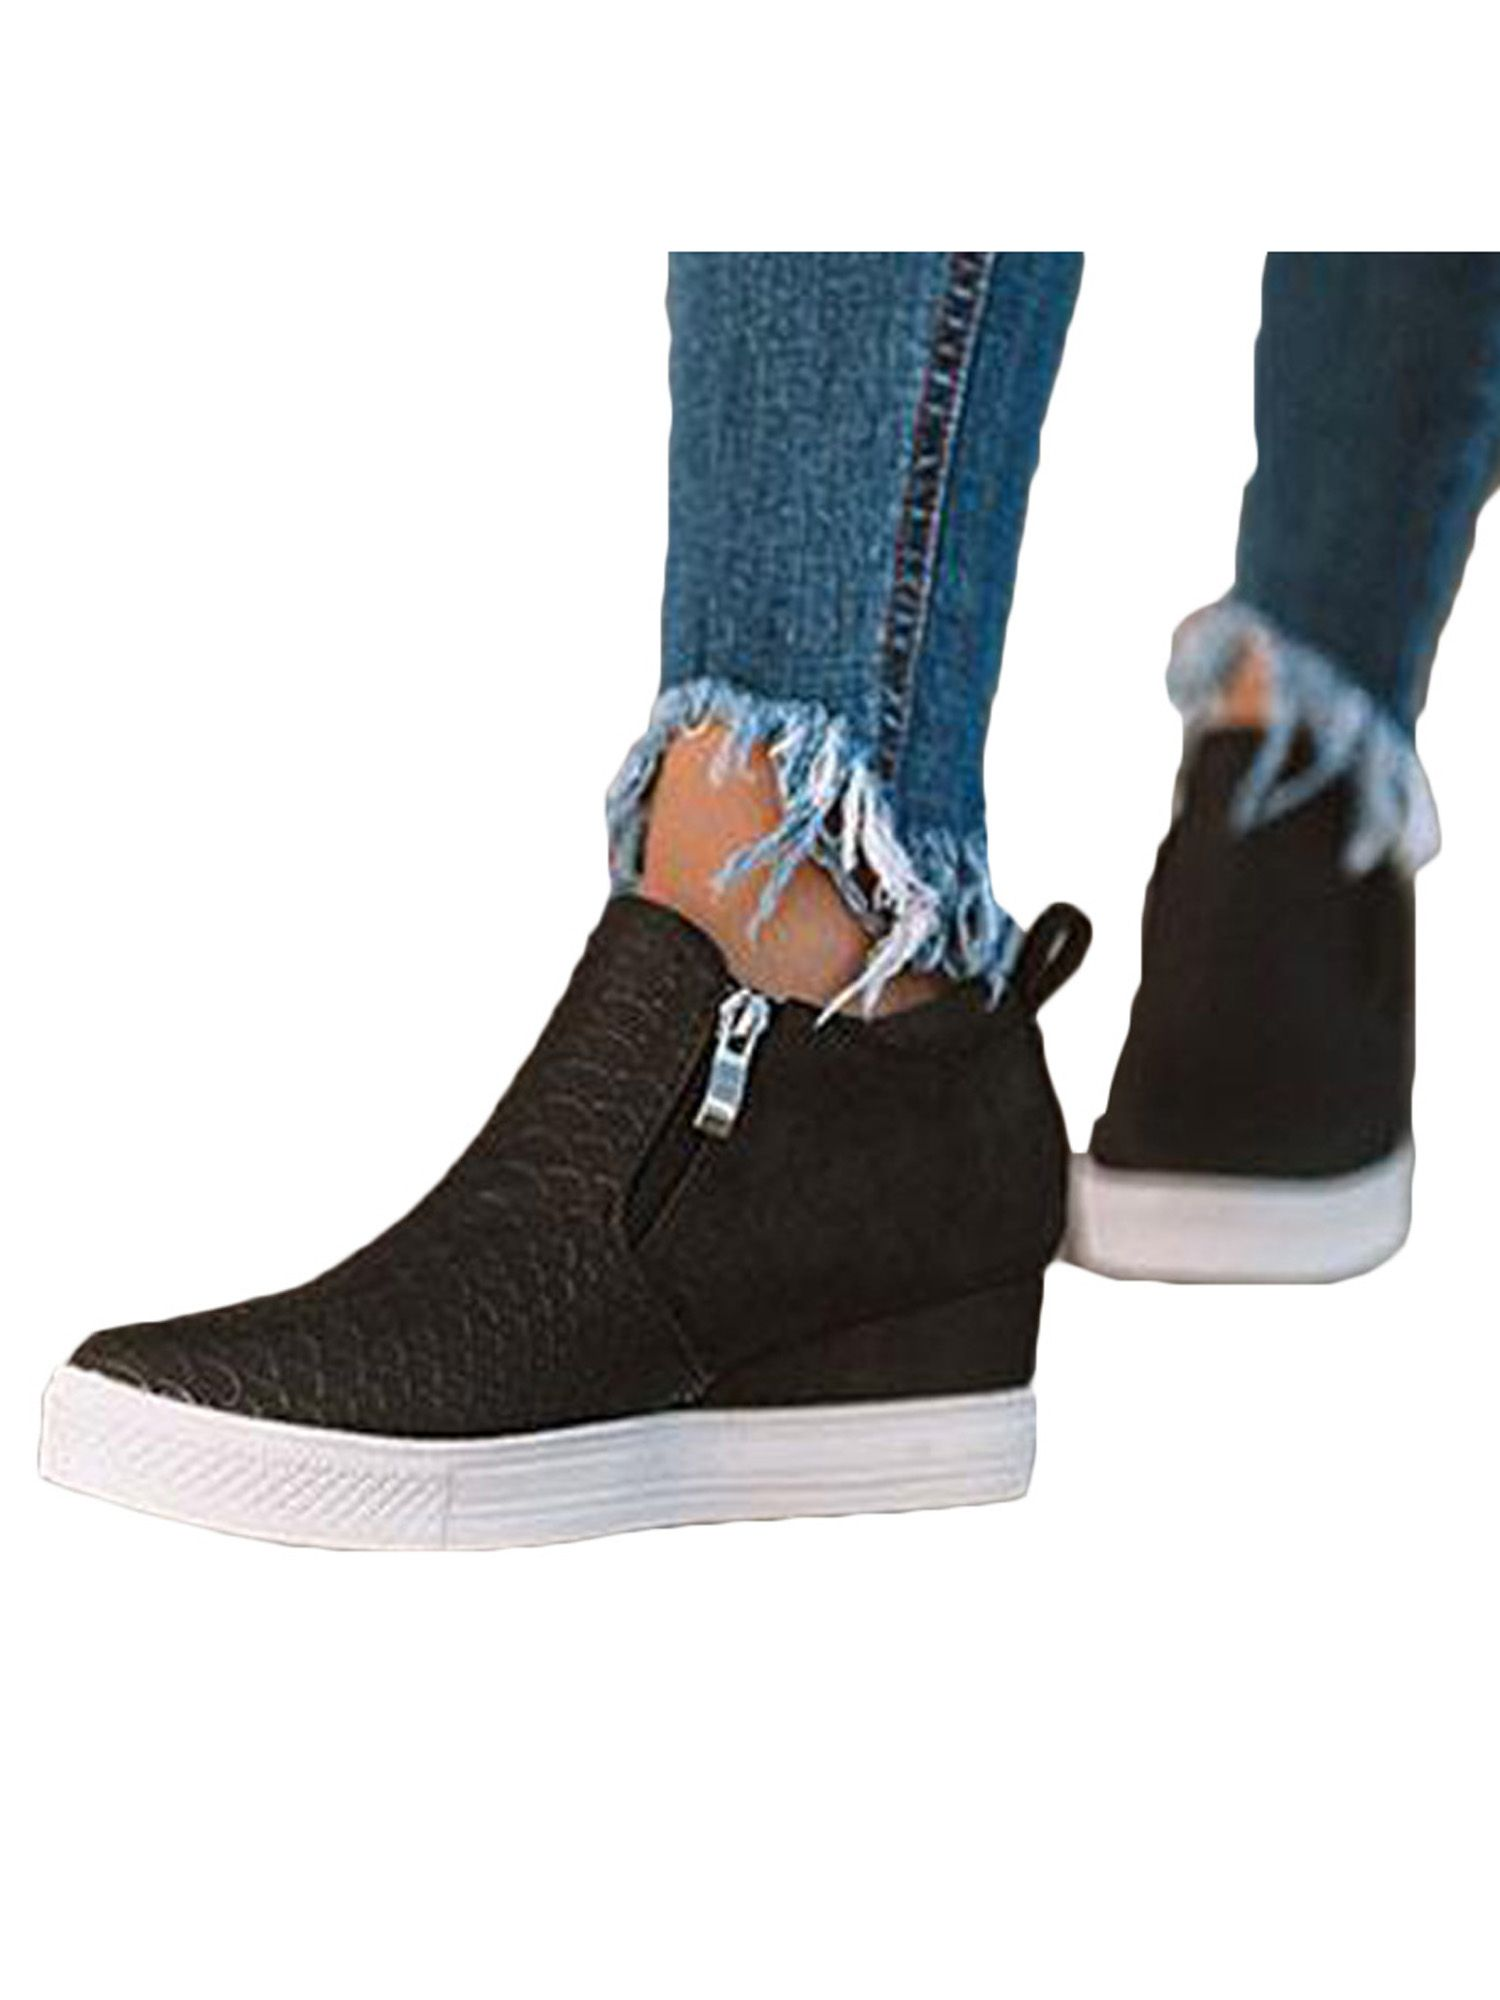 Wedge sneakers, Casual shoes